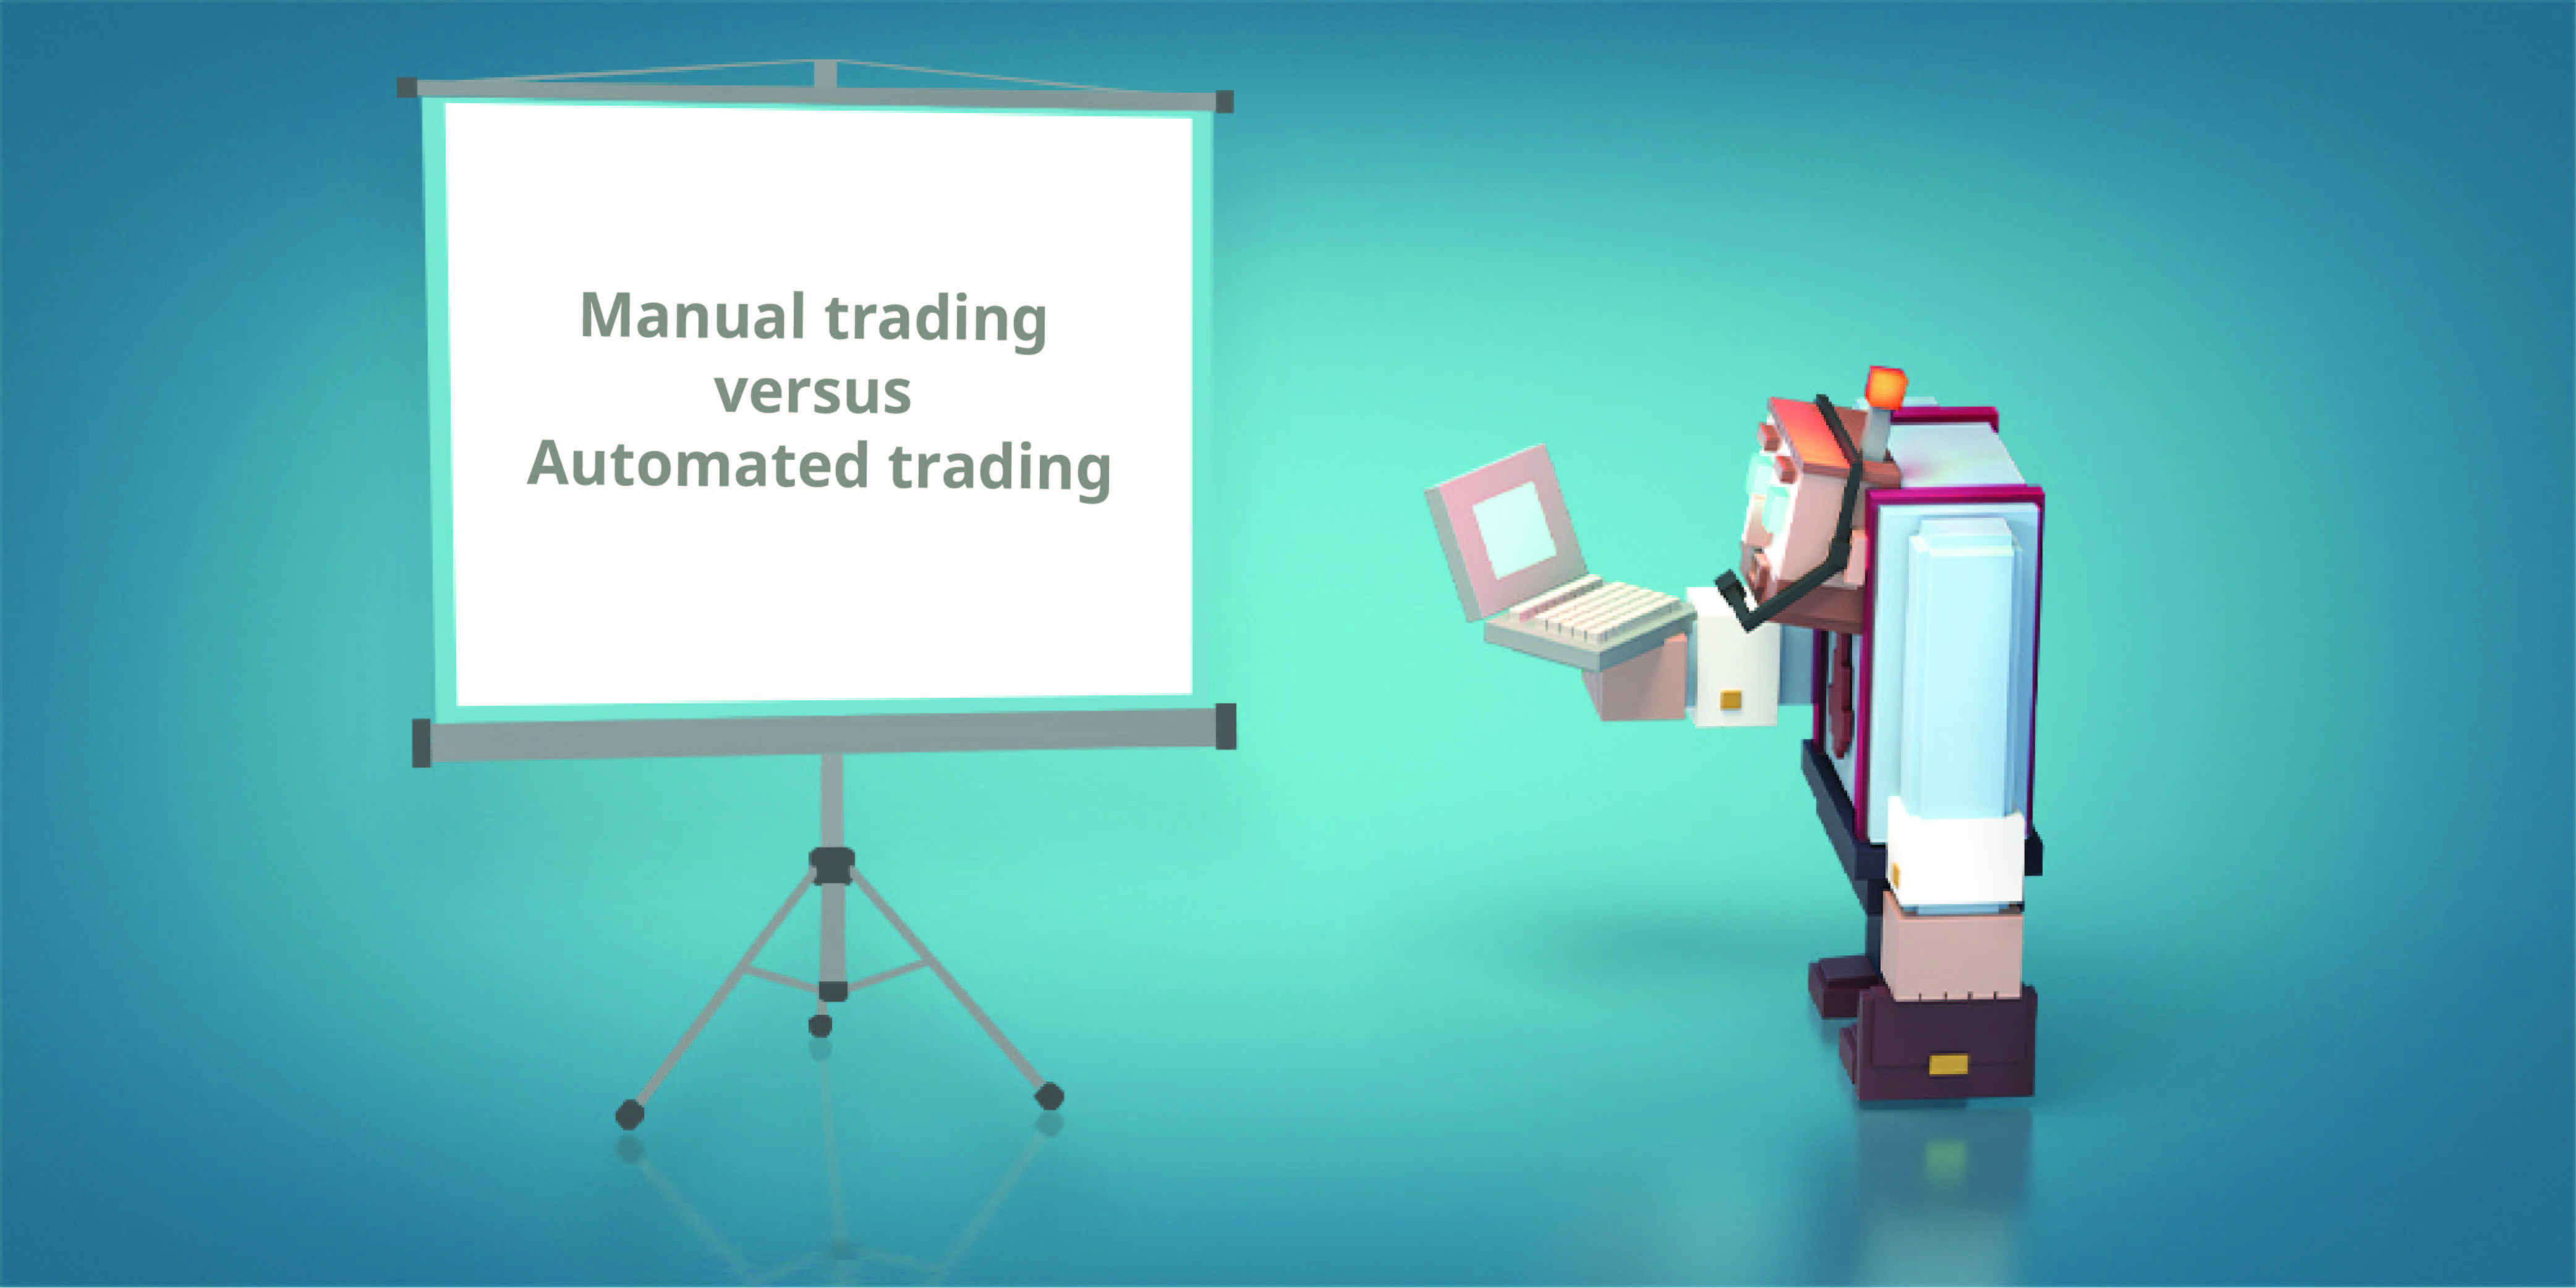 Investing for beginners-Handmatig versus automated investing